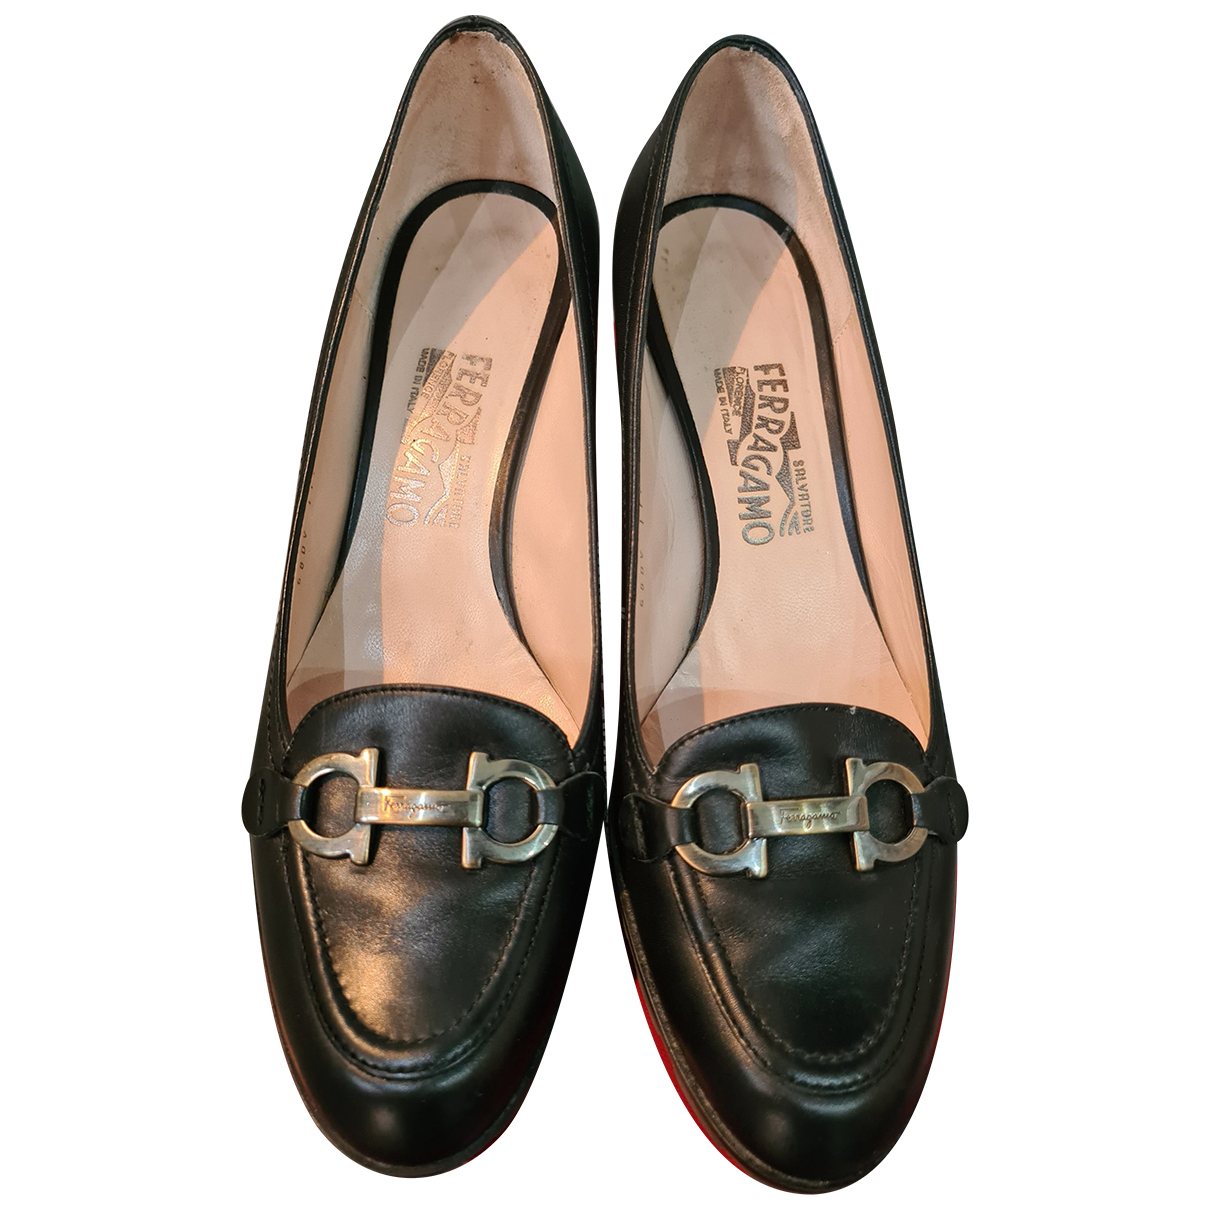 Salvatore Ferragamo N Black Leather Flats for Women 39 EU